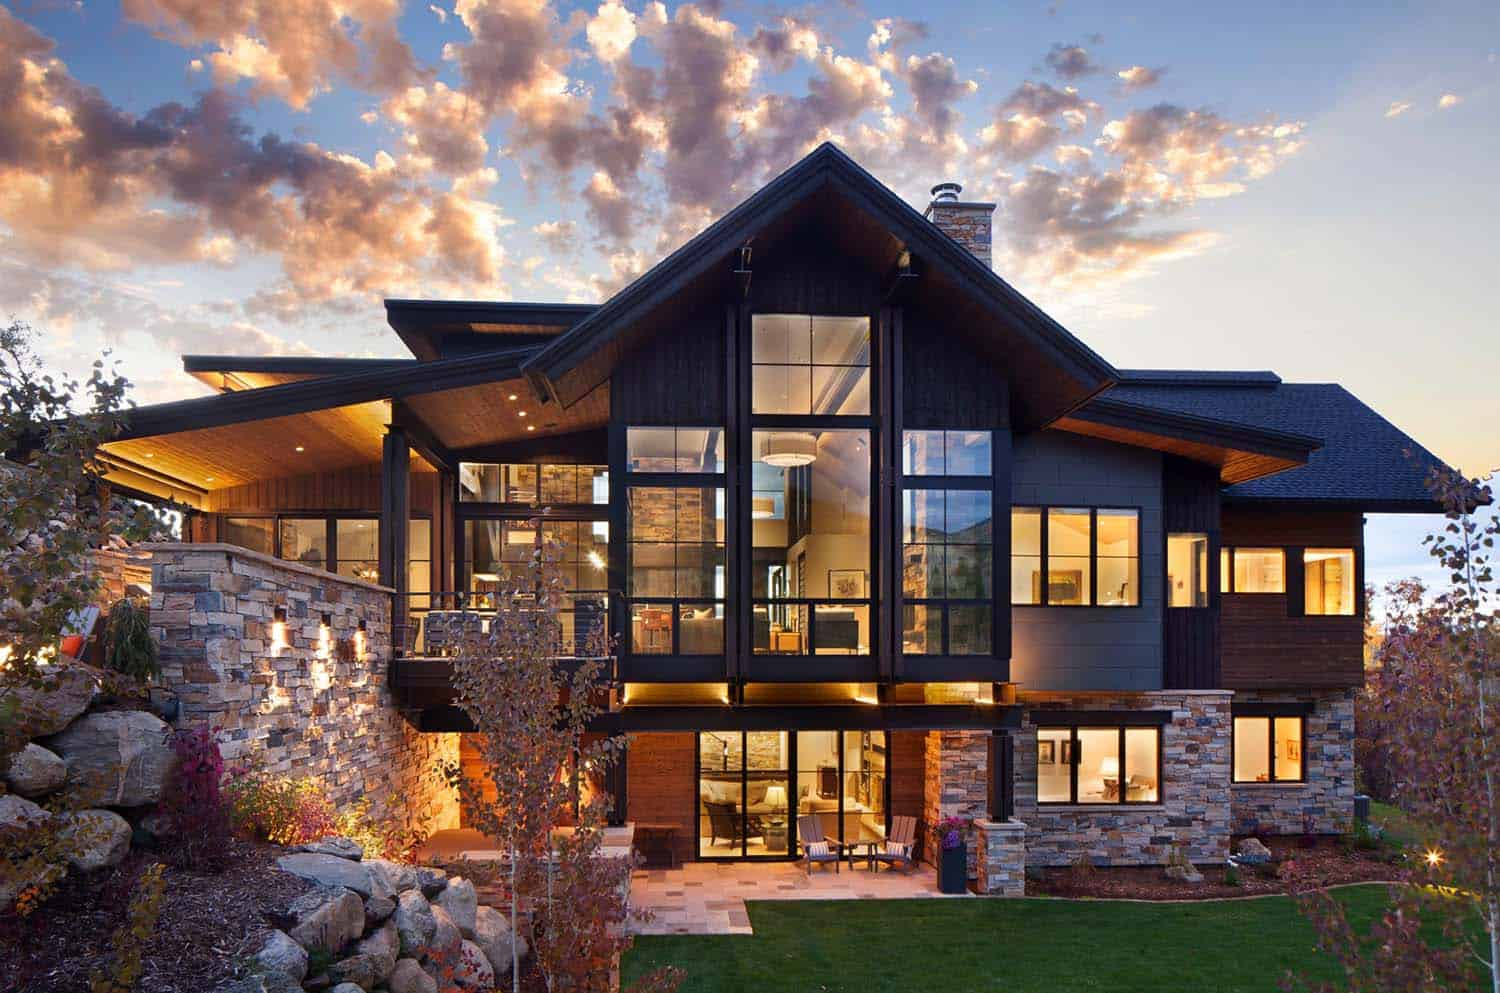 Best Kitchen Gallery: Breathtaking Contemporary Mountain Home In Steamboat Springs of Mountain Home Design  on rachelxblog.com